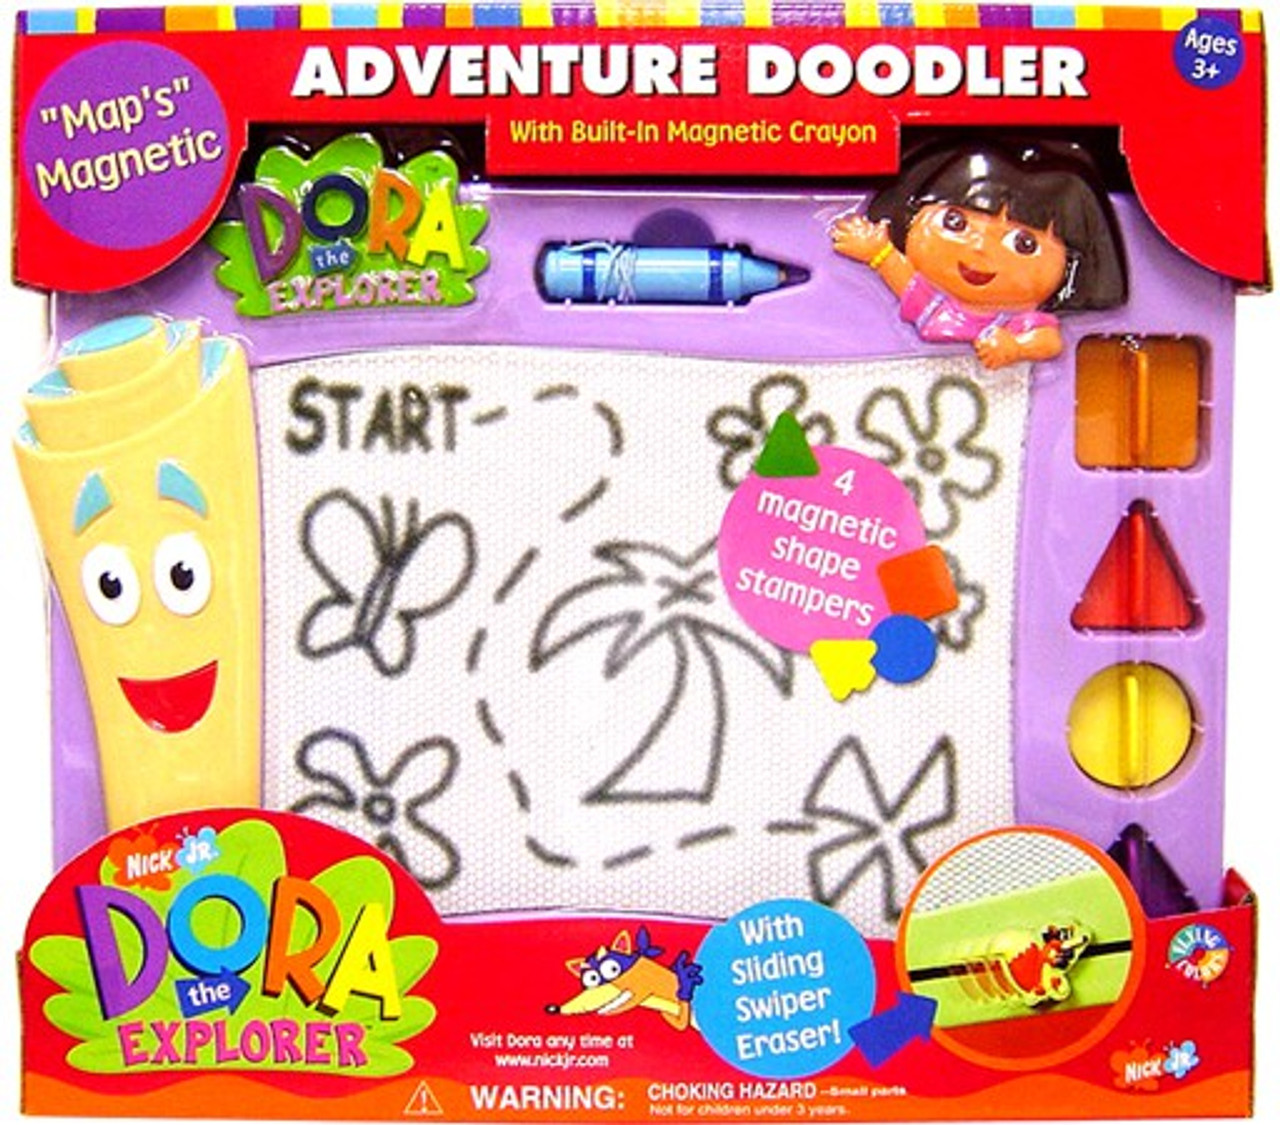 Dora the Explorer Maps Magnetic Adventure Doodler Jakks ... Dora Maps on youtube i'm the map, circle map thinking map, teletubbies map, dinosaur train map, adventure time map, treasure map, batman map, scroll map, veggietales map, lazytown map, warrior map, pokemon map, titanic map, blues clues map, jake and the neverland map,